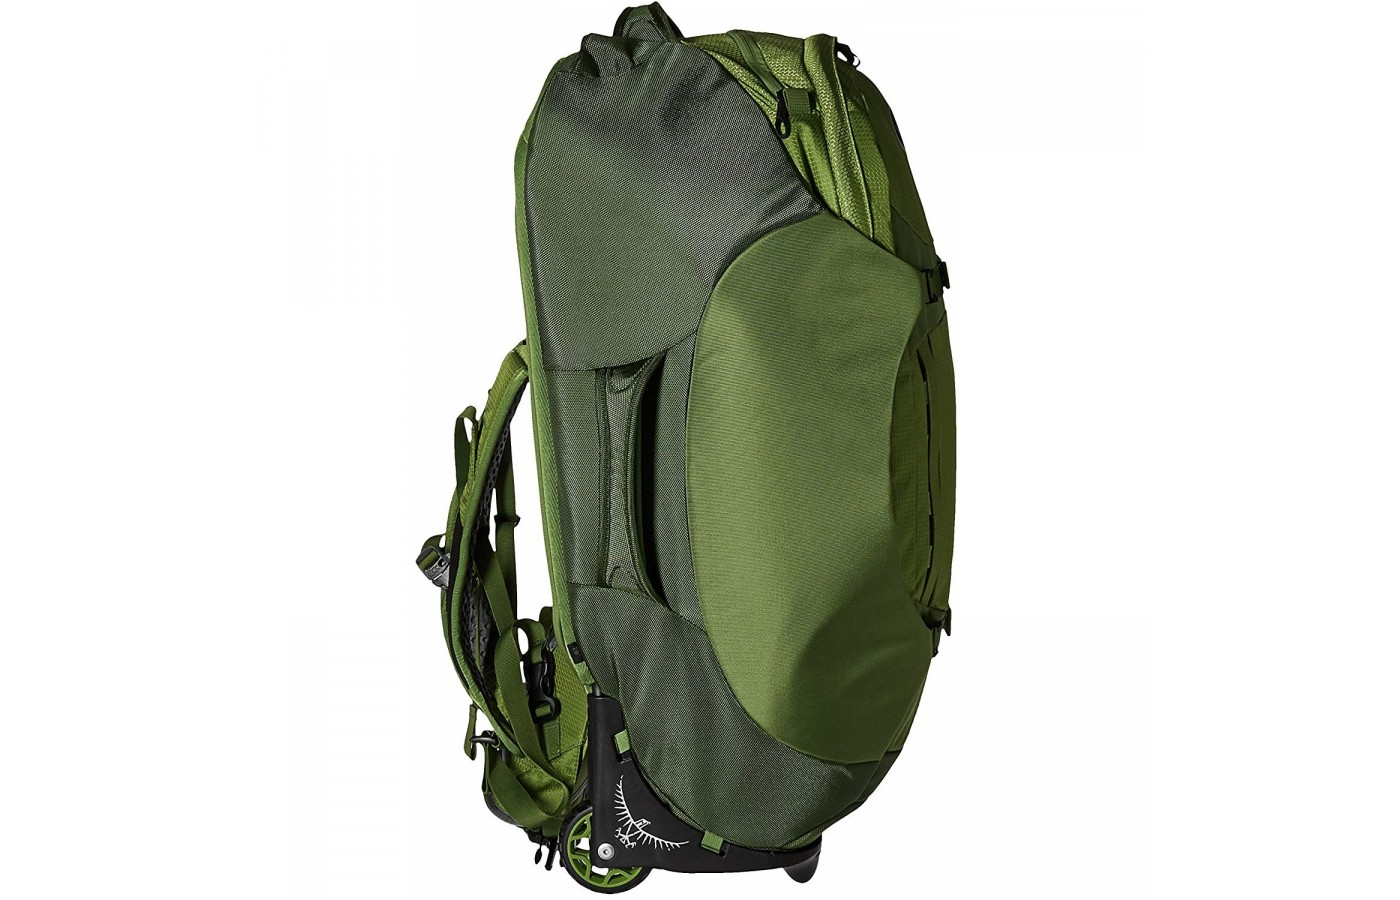 The Osprey Sojourn 80 includes both straps and wheels for optional movement options.